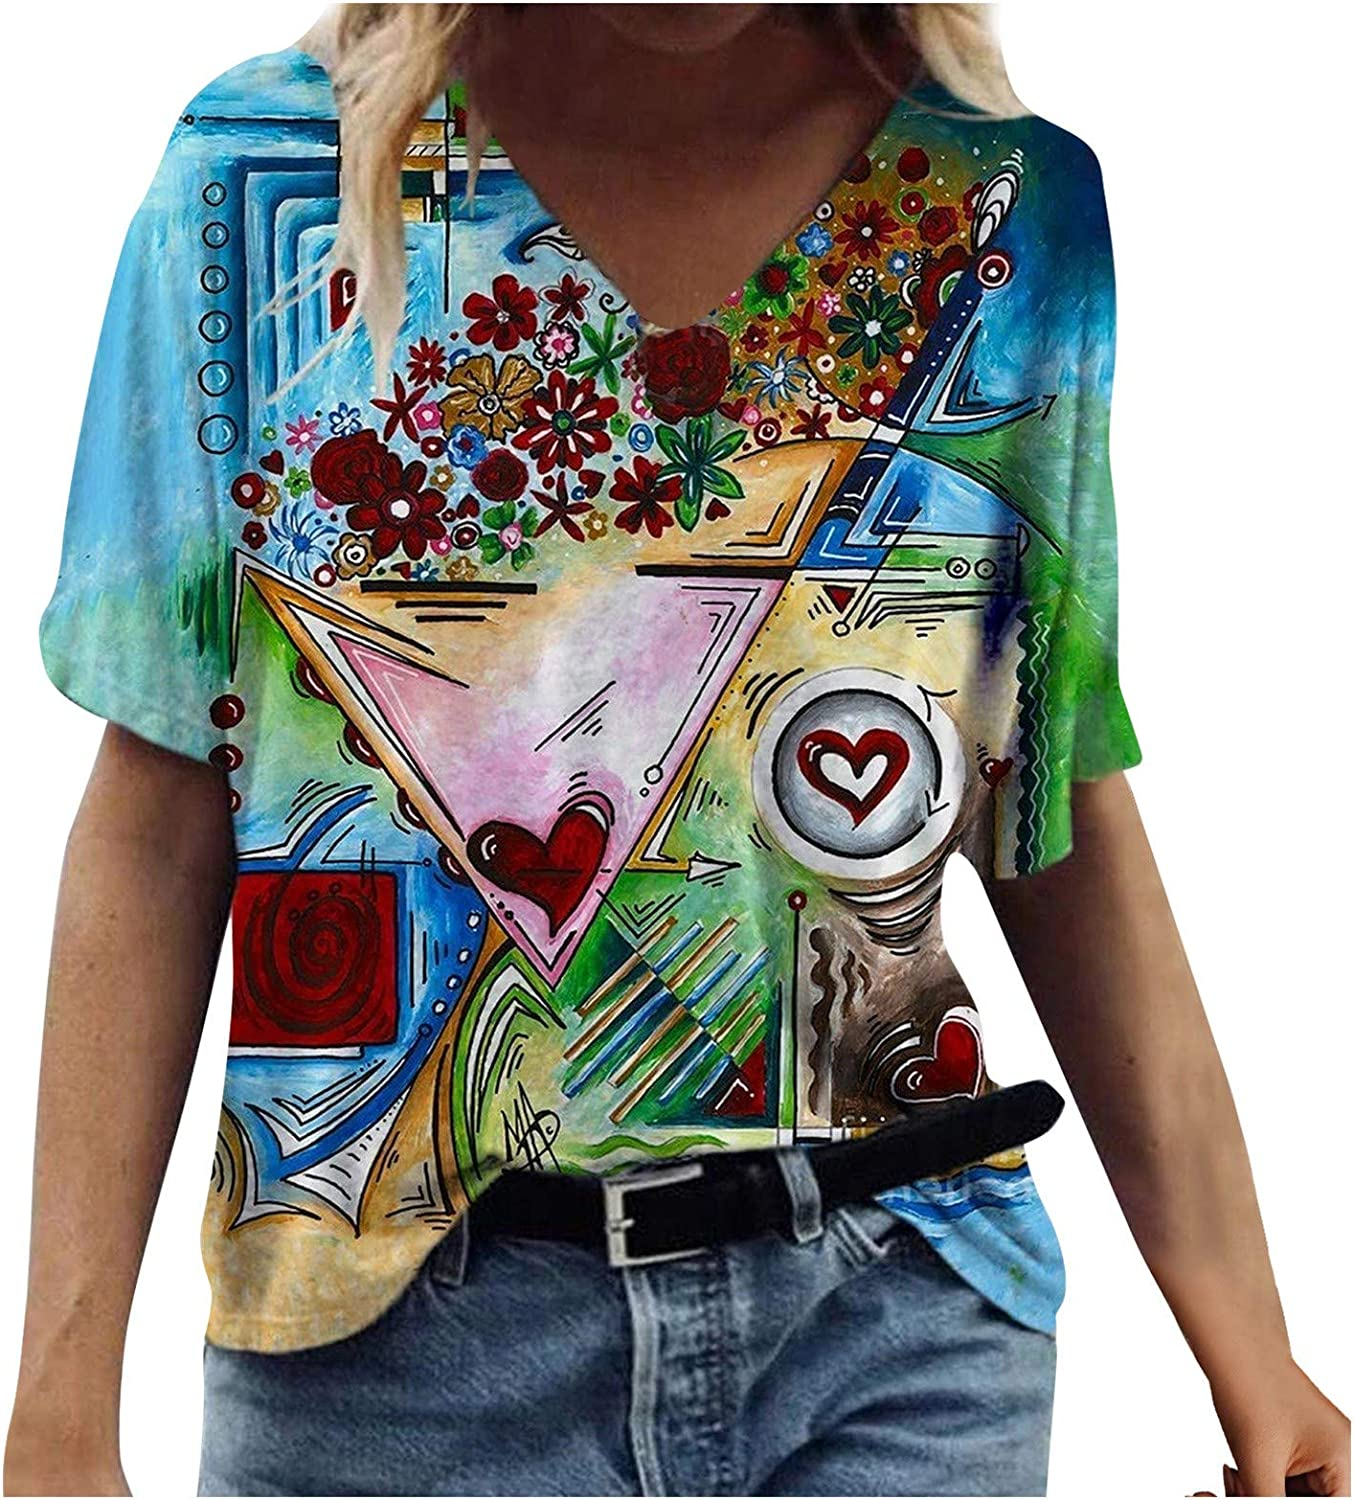 AODONG Summer Tops for Women Short Sleeve, Womens V Neck Floral Printed Casual Tees Shirt Tunics Blouses Funny Shirts